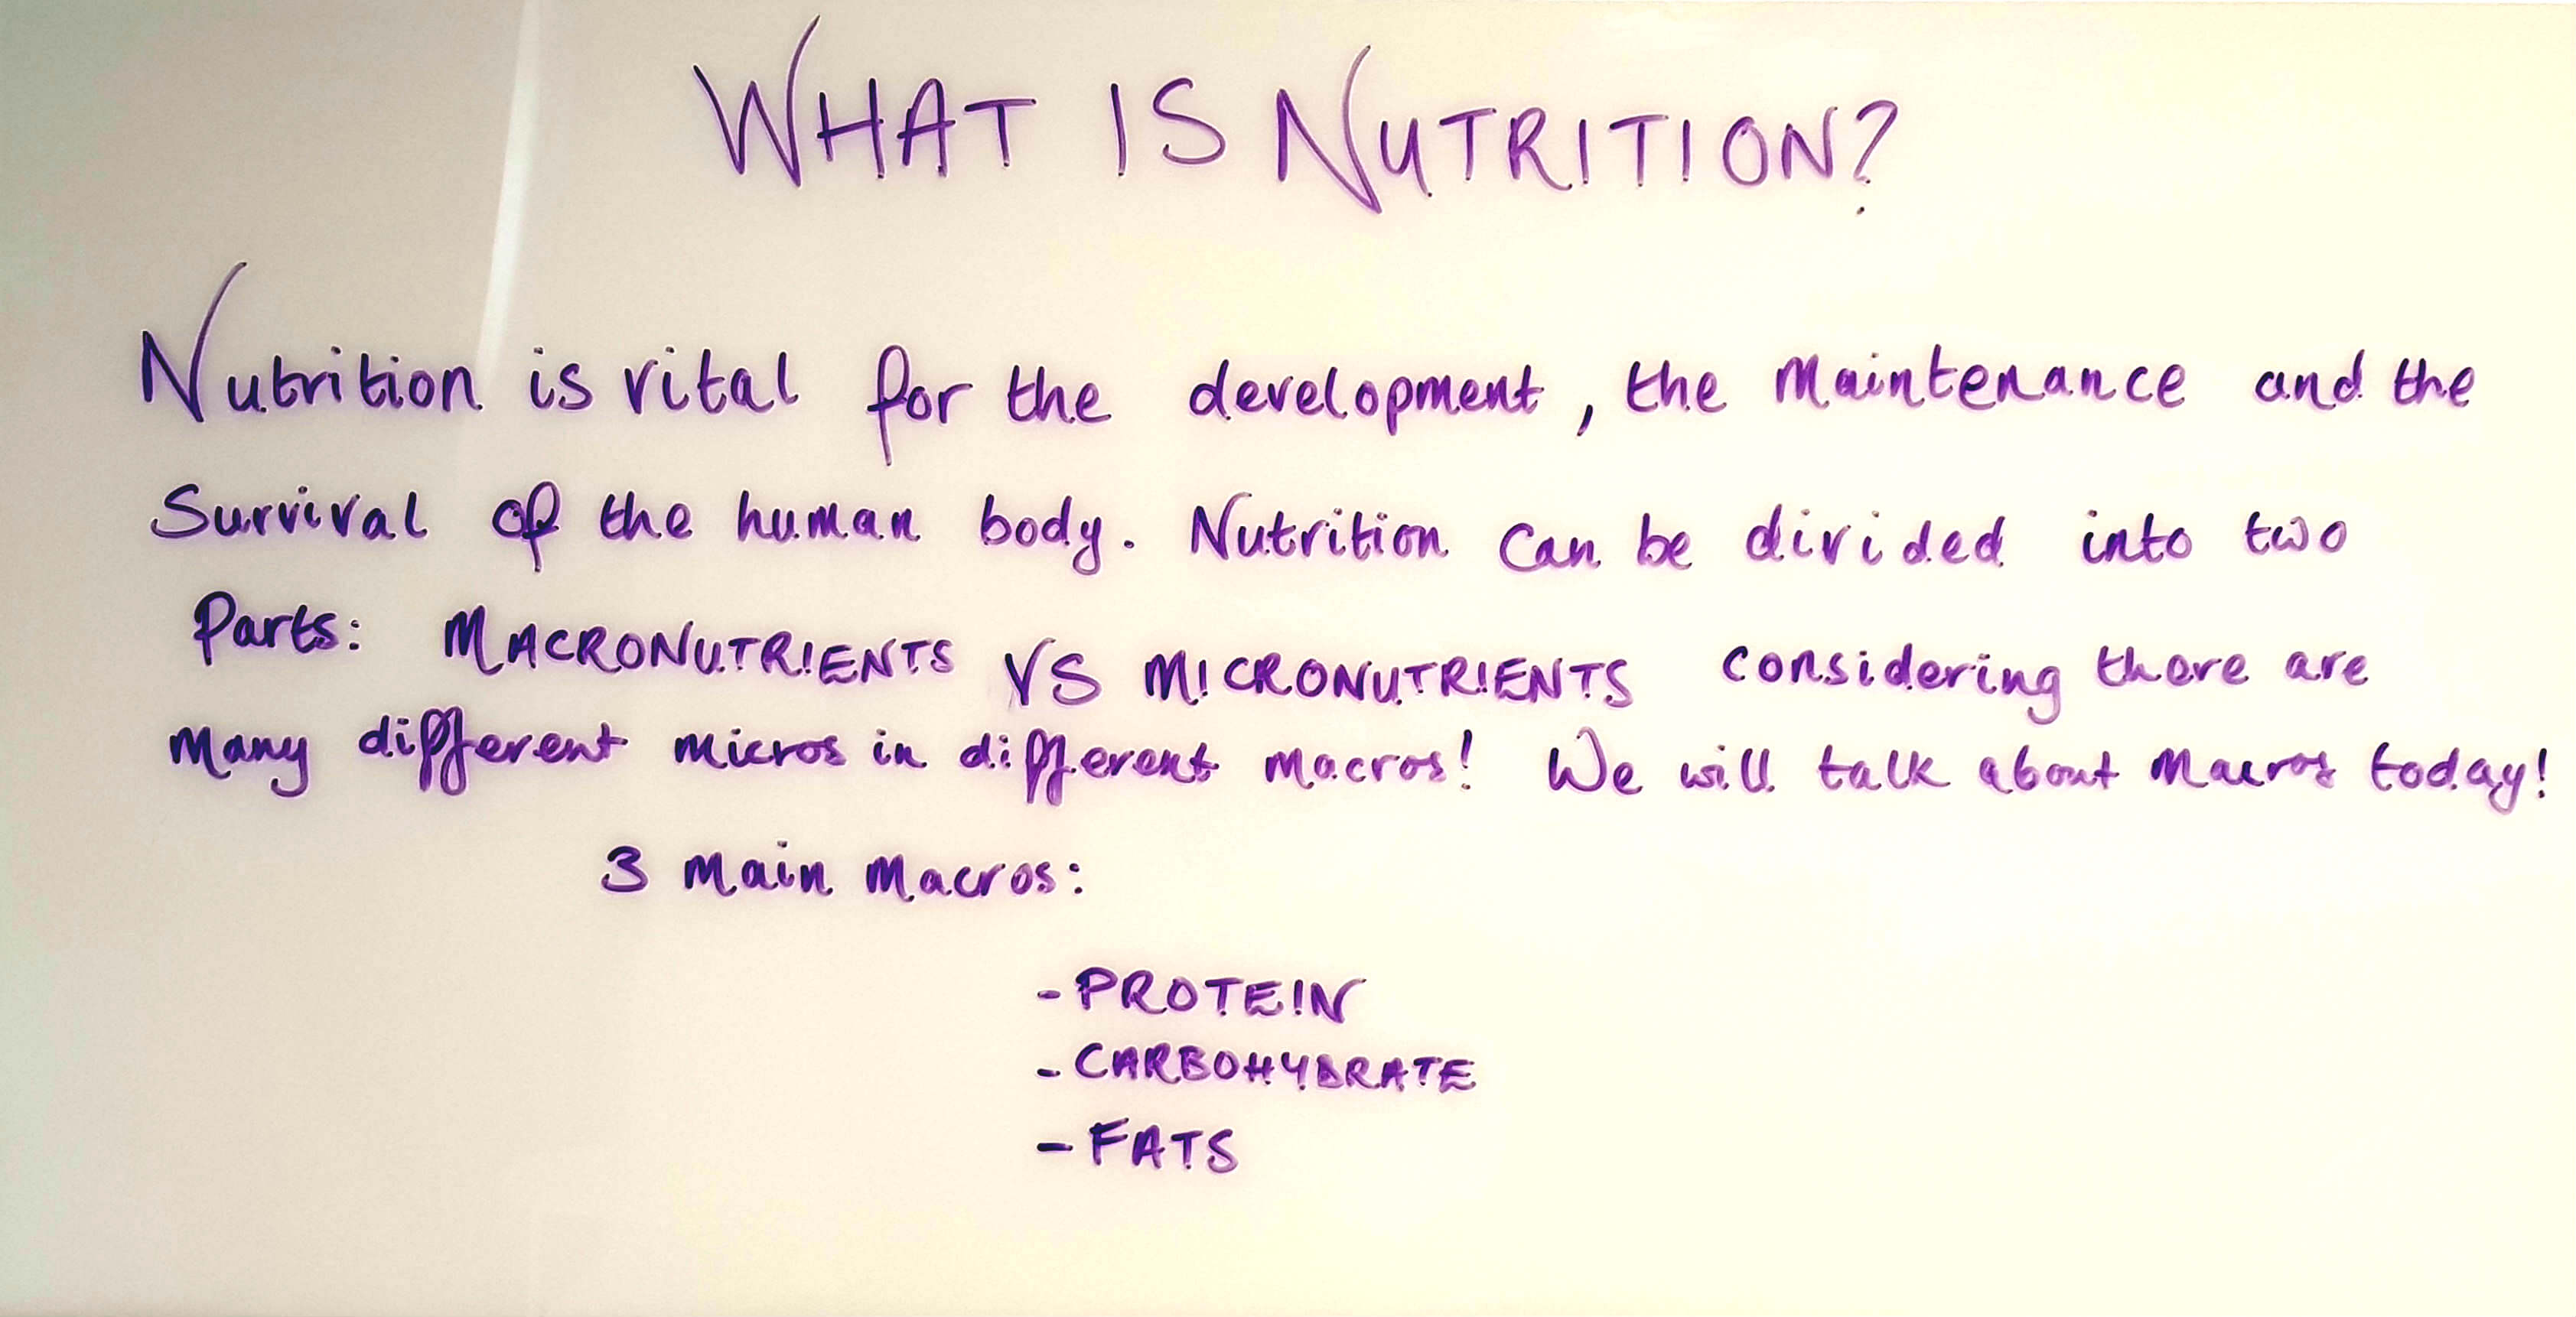 Nutrition is vital for the development, maintenance and the survival of the human body.